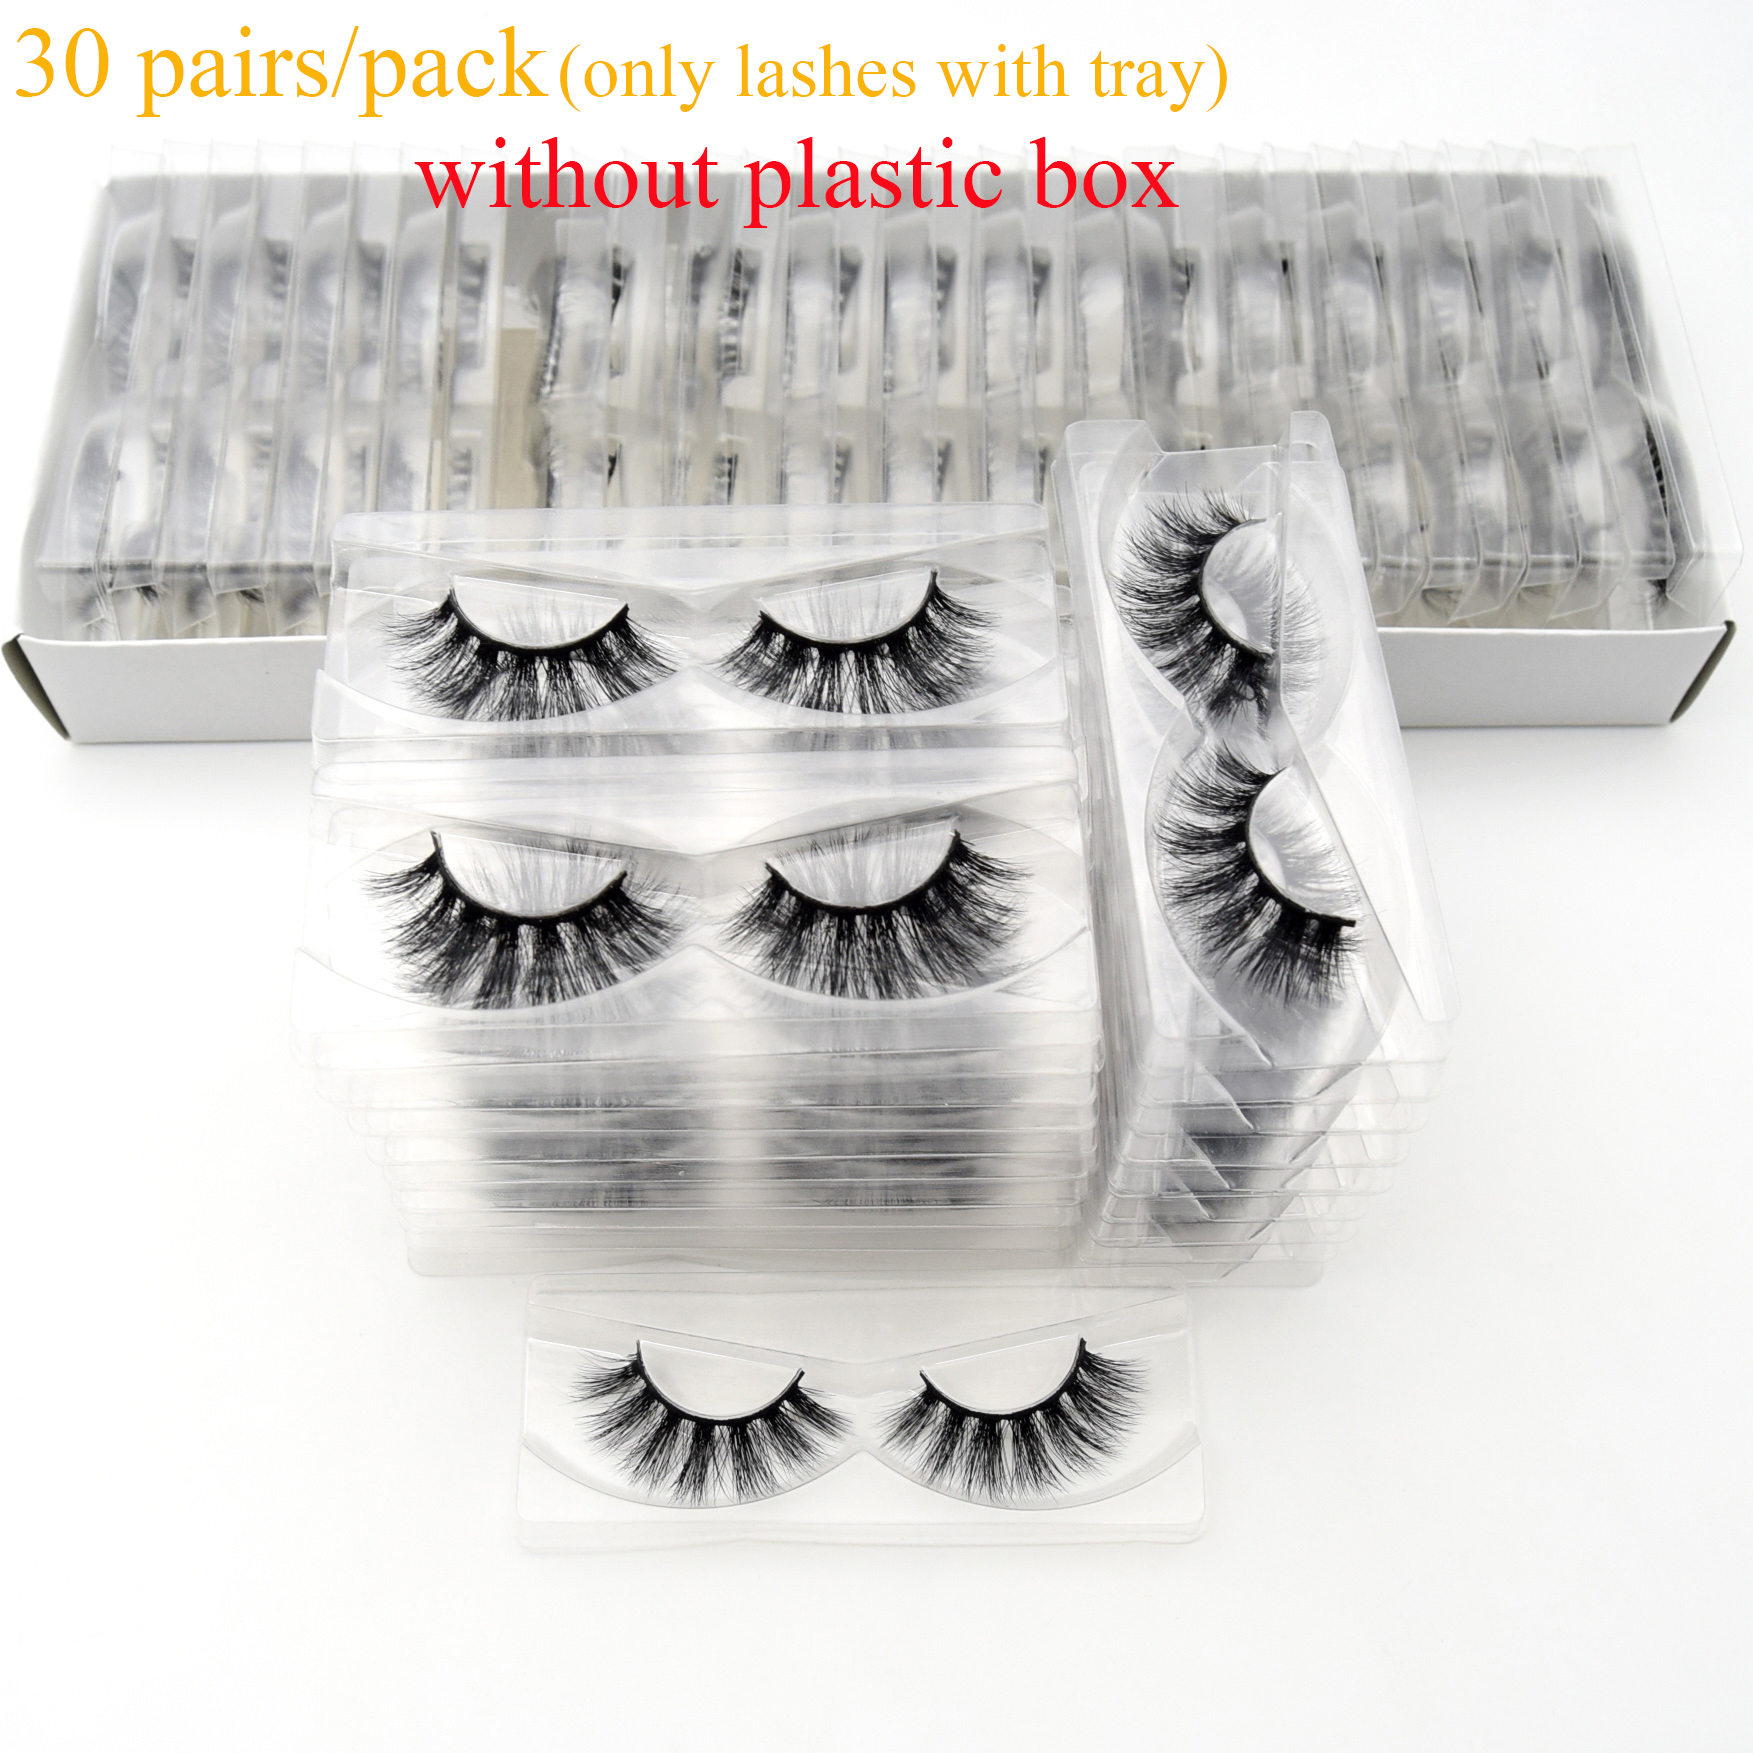 <font><b>30</b></font>/40pairs/pack Visofree Mink <font><b>Eyelashes</b></font> with Tray No Box Handmade Natural False <font><b>Eyelashes</b></font> Full Strip Lashes Reusable Long lashes image